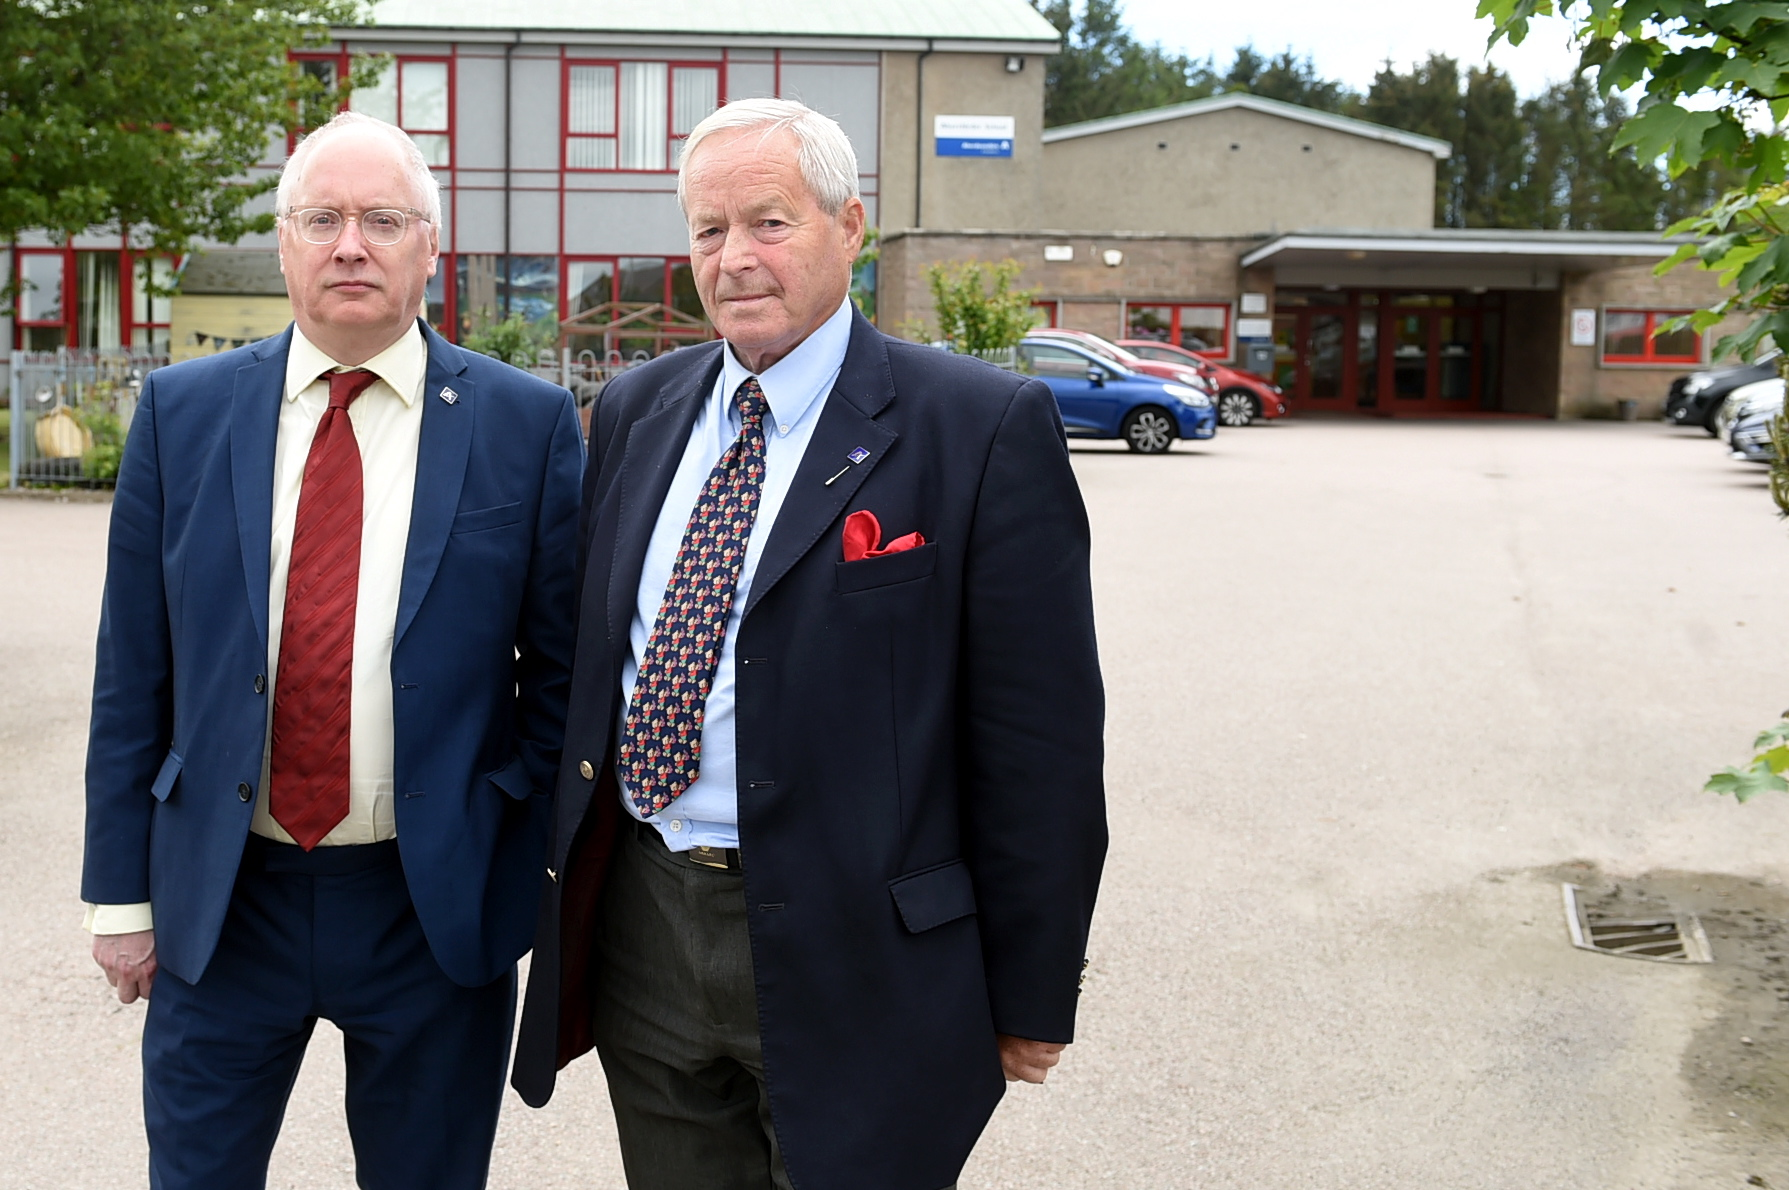 Pictured is Glen Reynolds, left, and Mike Roy - both councillors were involved in the Aberchirder Primary School action plan discussions. Picture by Jim Irvine.